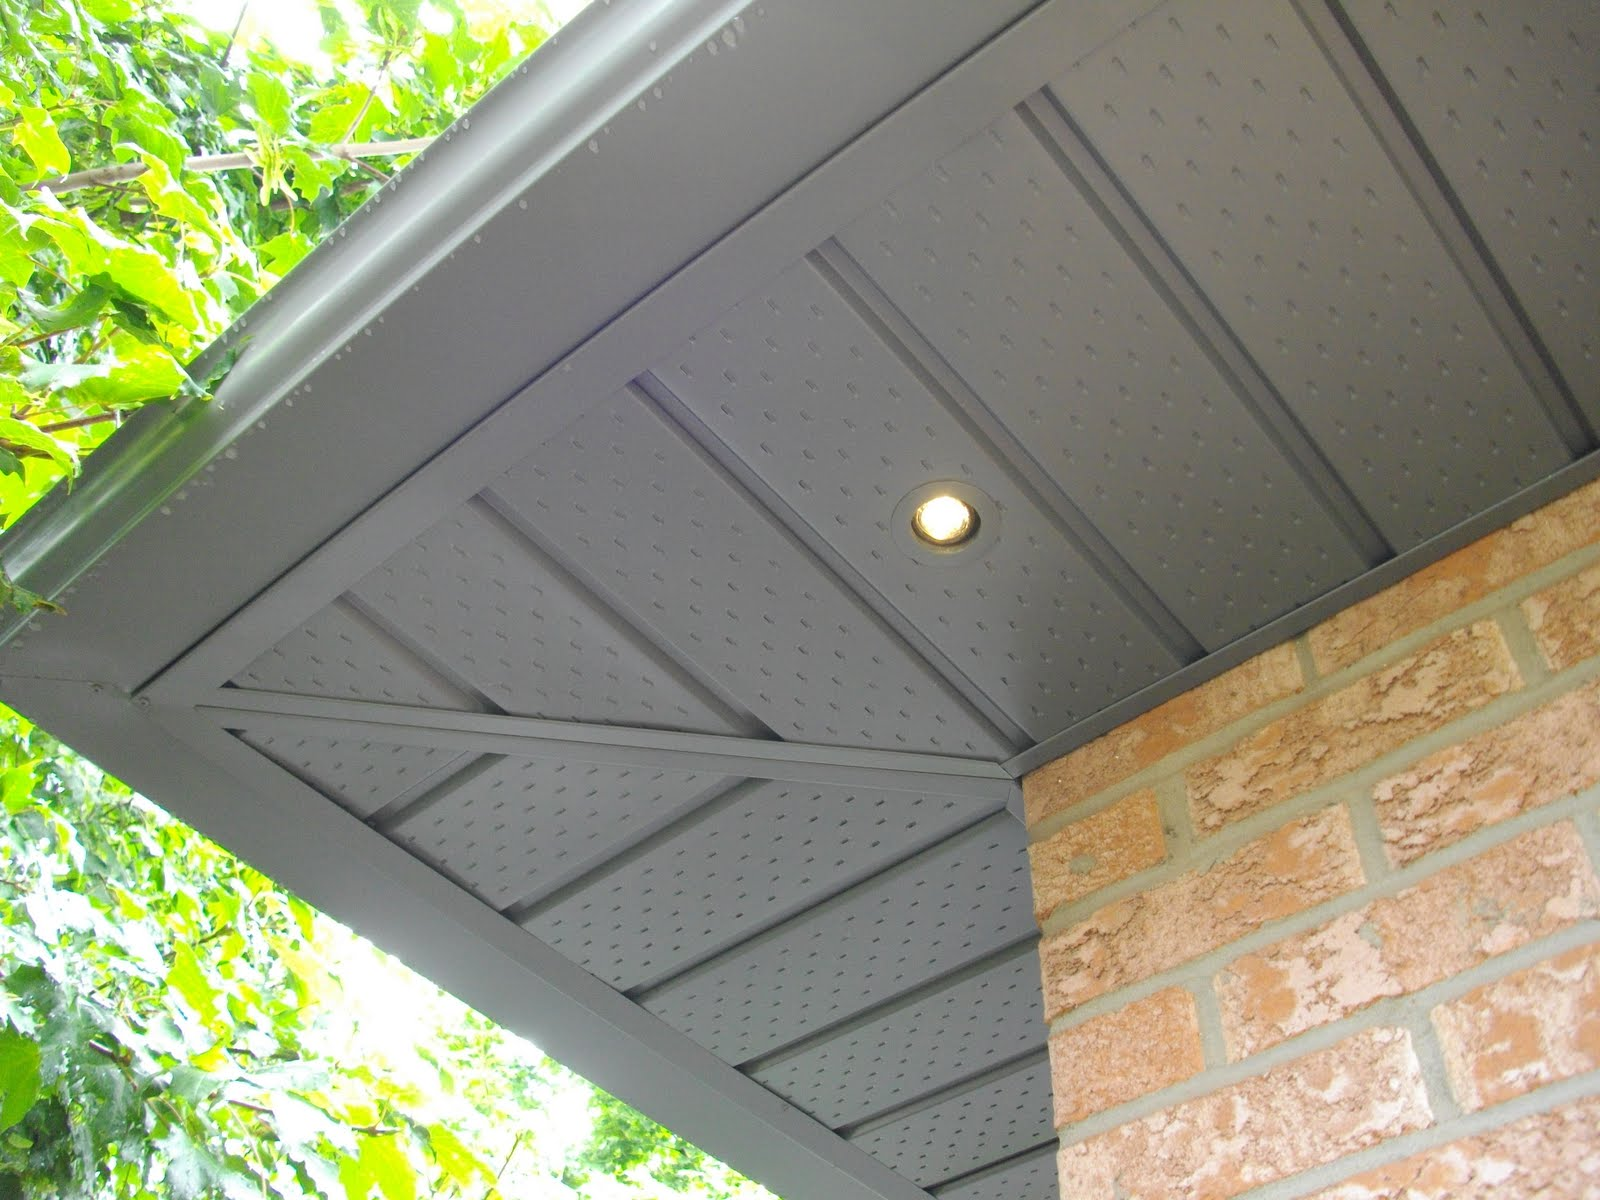 Automatic Timer Led Lighting Soffit Of Toronto Home Eavestrough Gutter